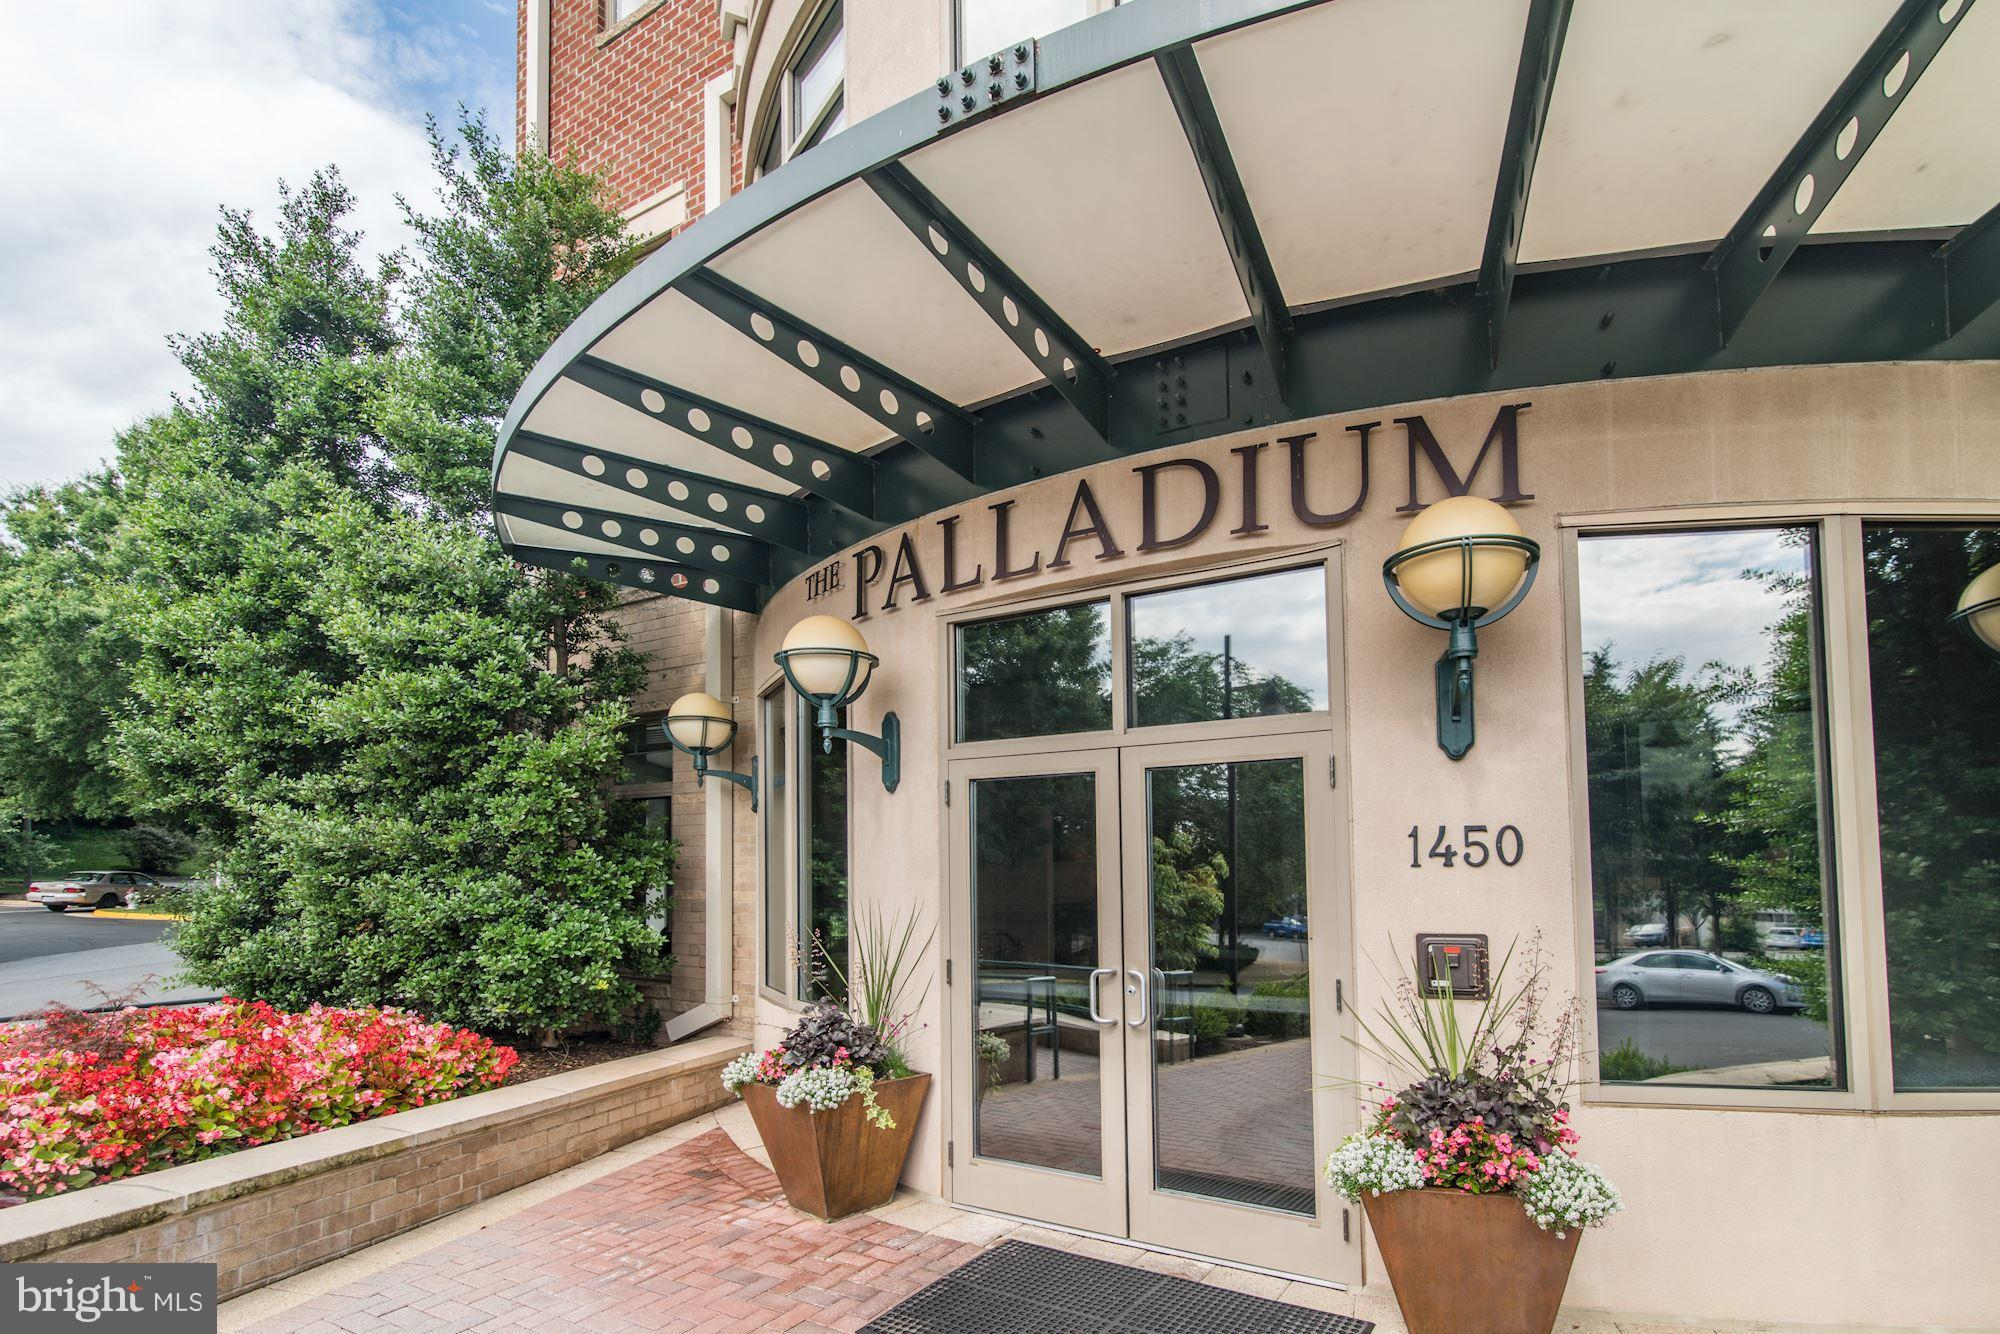 Sought after model! Spacious & bright condo with over 2400 sq ft of beautiful living space. 2 BRs, 2.5 baths, separate dining & living space with den. Unique with 2 patios, and a separate large storage unit. Within walking distance to shops/restaurants and all the conveniences of The Palladium at McLean! Secure two car garage parking, concierge, club room, fitness center, conf.rm, billard, & more!